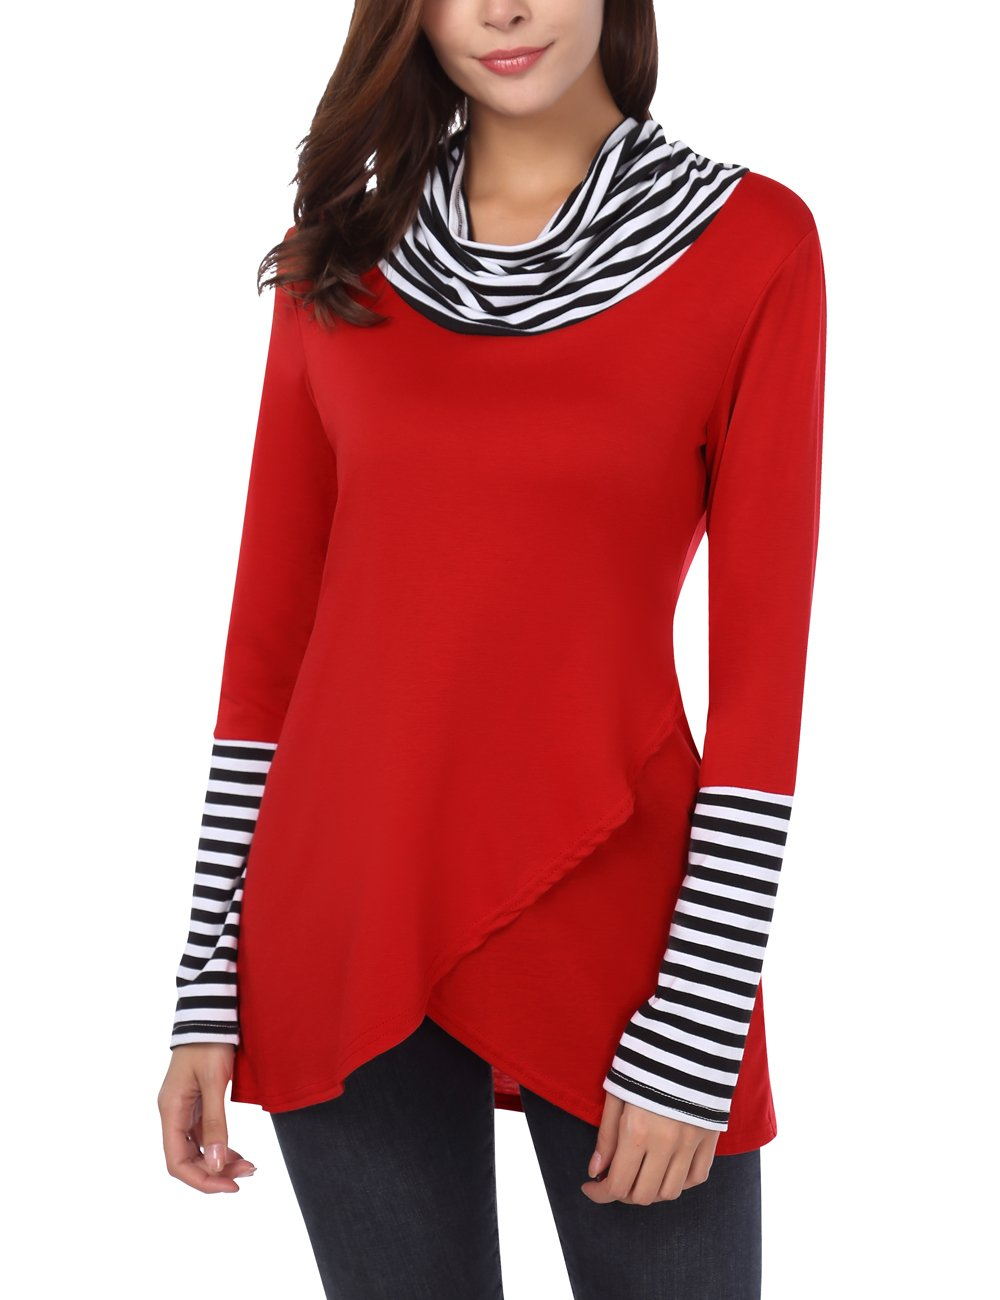 DJT Cowl Neck Tops for Women, Women's Cowl Neck Draped Striped Stitching Long Sleeve Layered Top Red M